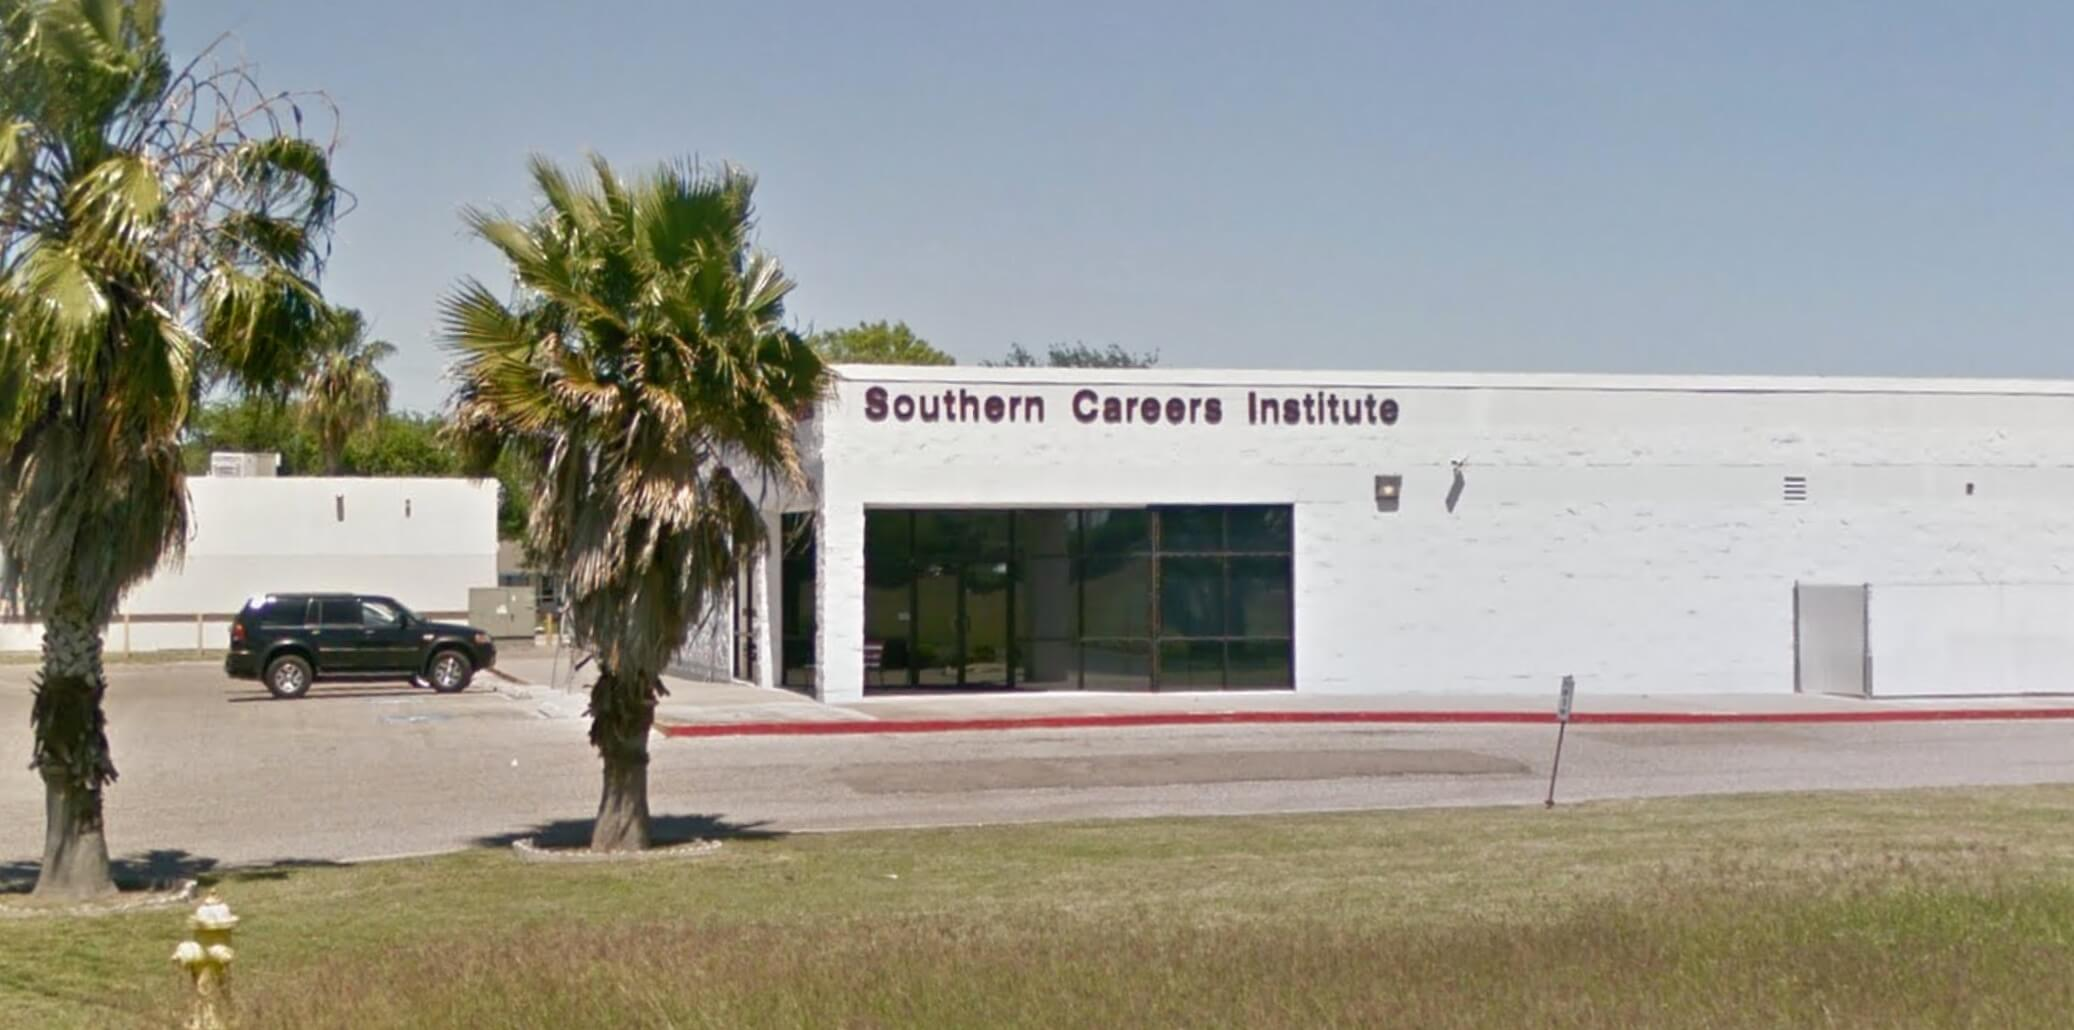 Southern Careers Institute | SCI Texas | Career Training